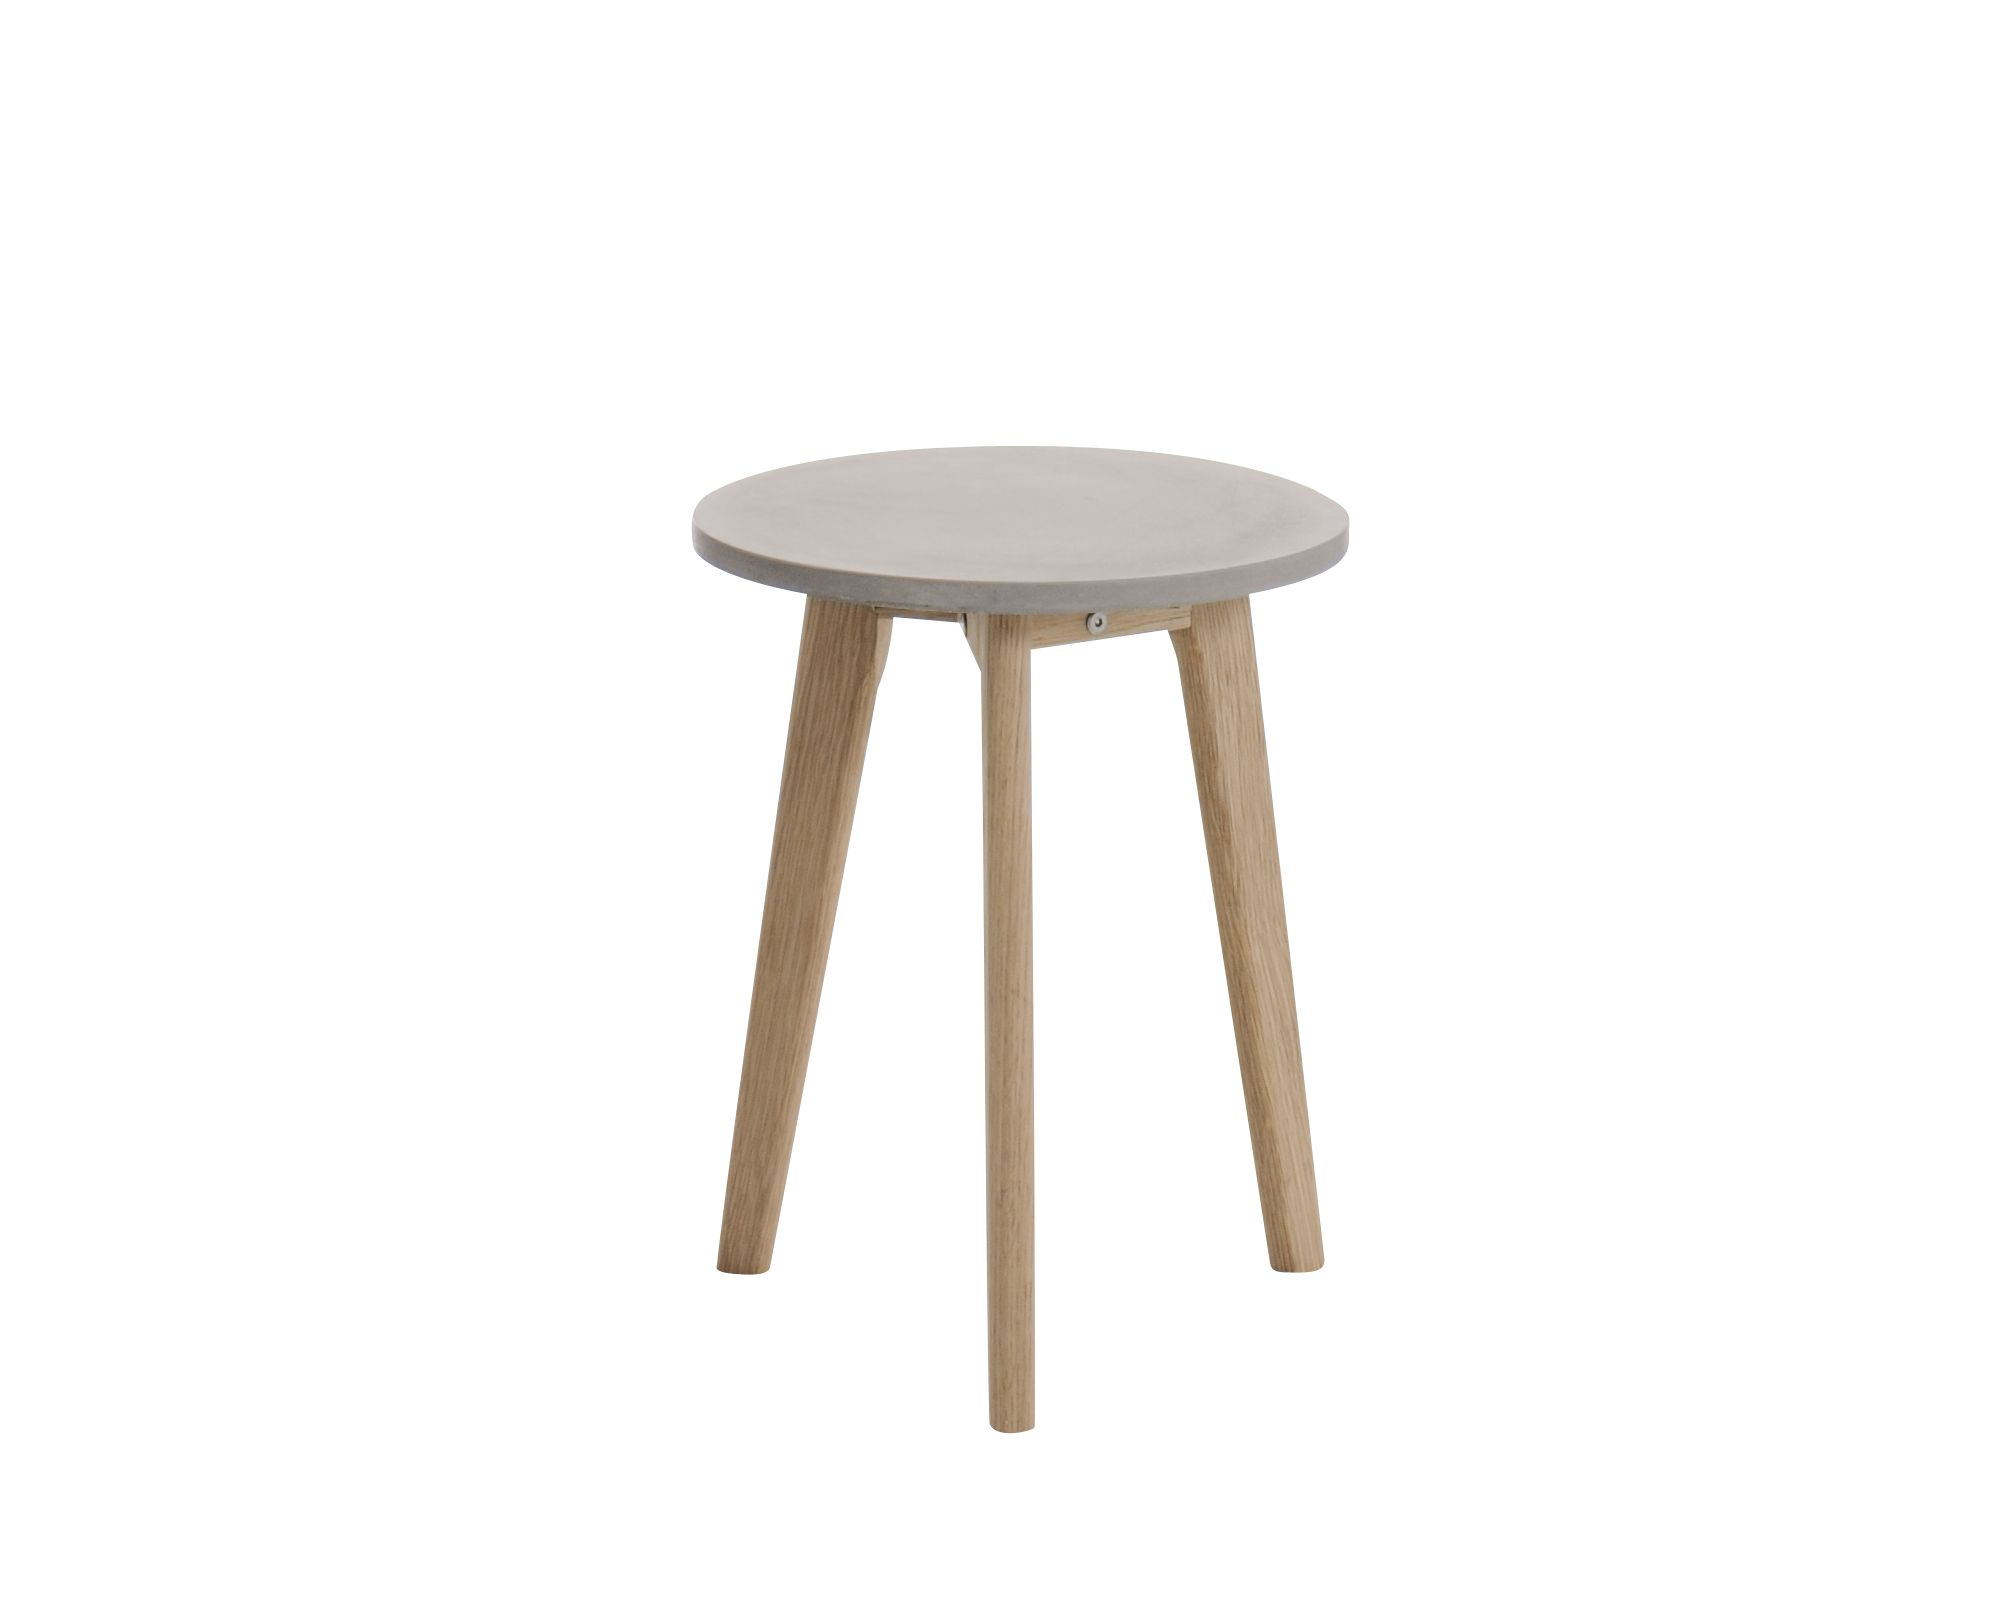 77735329_2?wid=2000&hei=1475&fmt=png-alpha Meilleur De De Table Basse Italienne Design